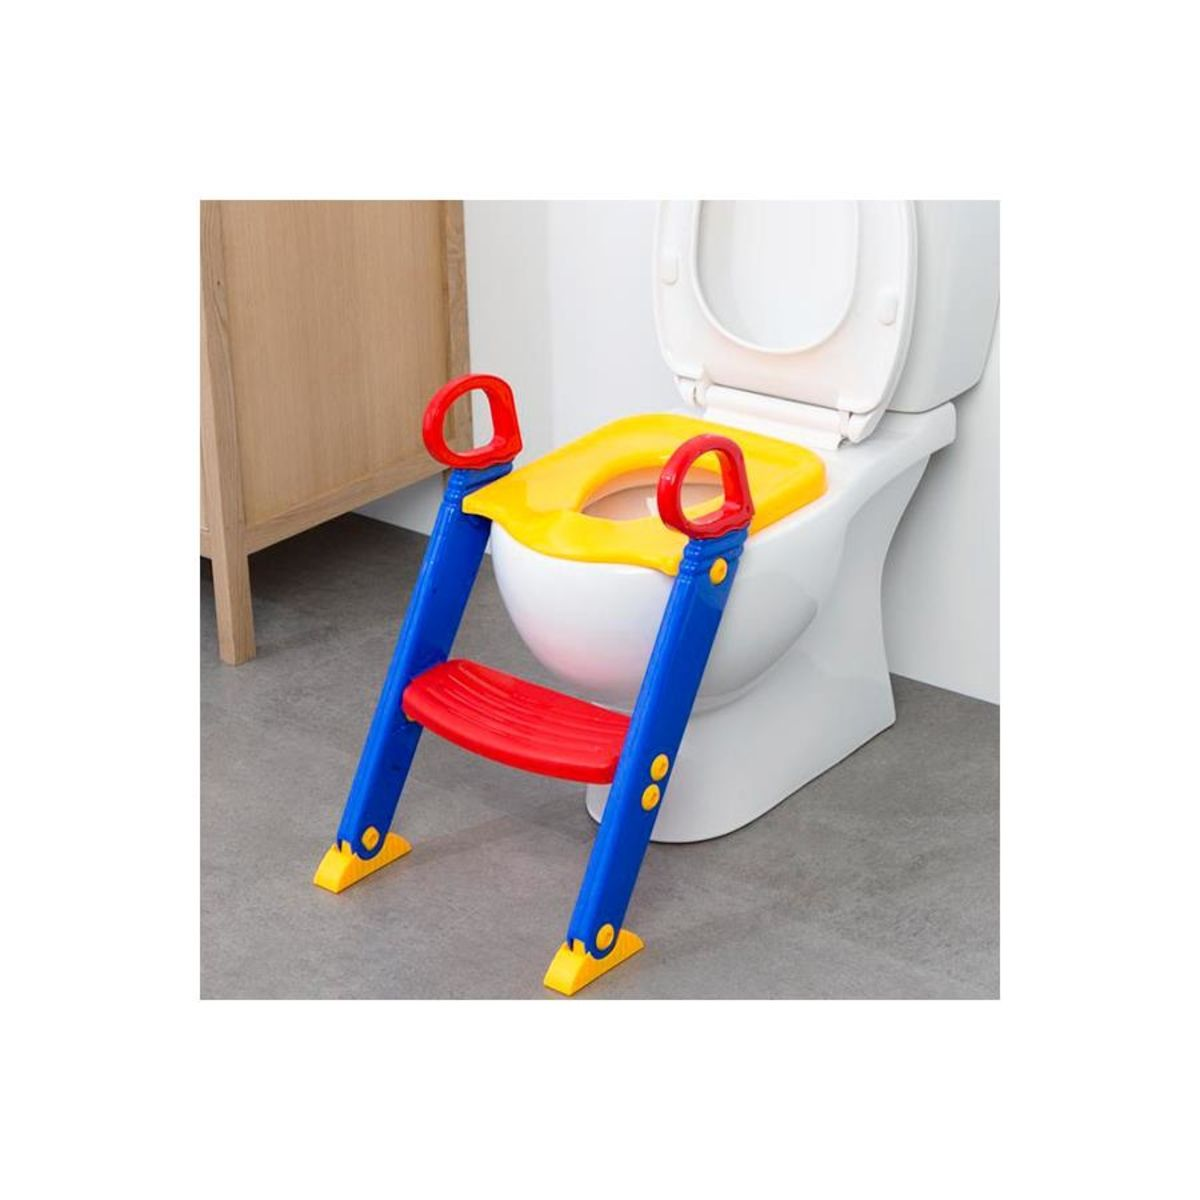 Awesome Toilet Training System Kmart Toilet Training Nursery Ibusinesslaw Wood Chair Design Ideas Ibusinesslaworg